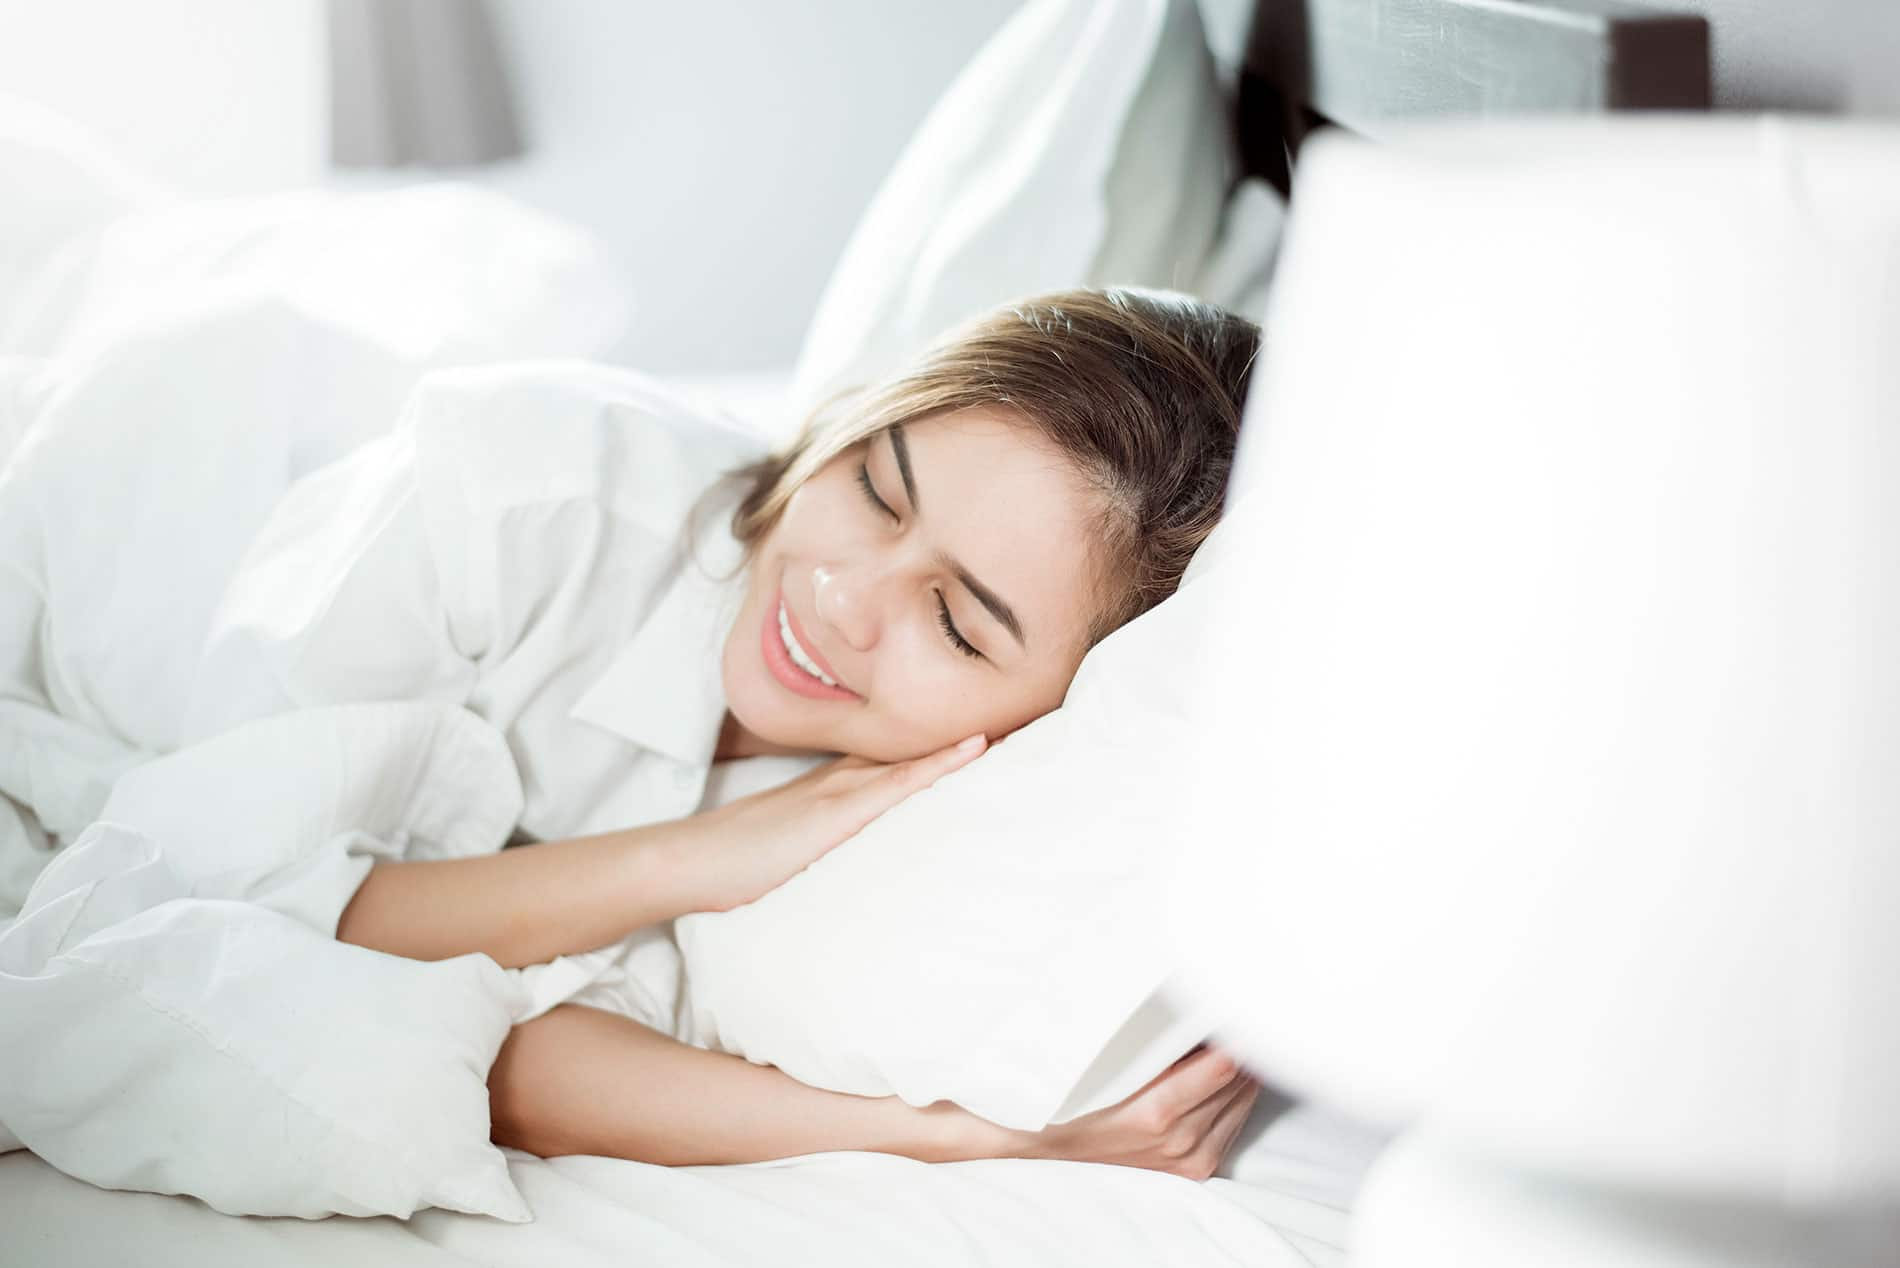 Have a quality and healthy sleep